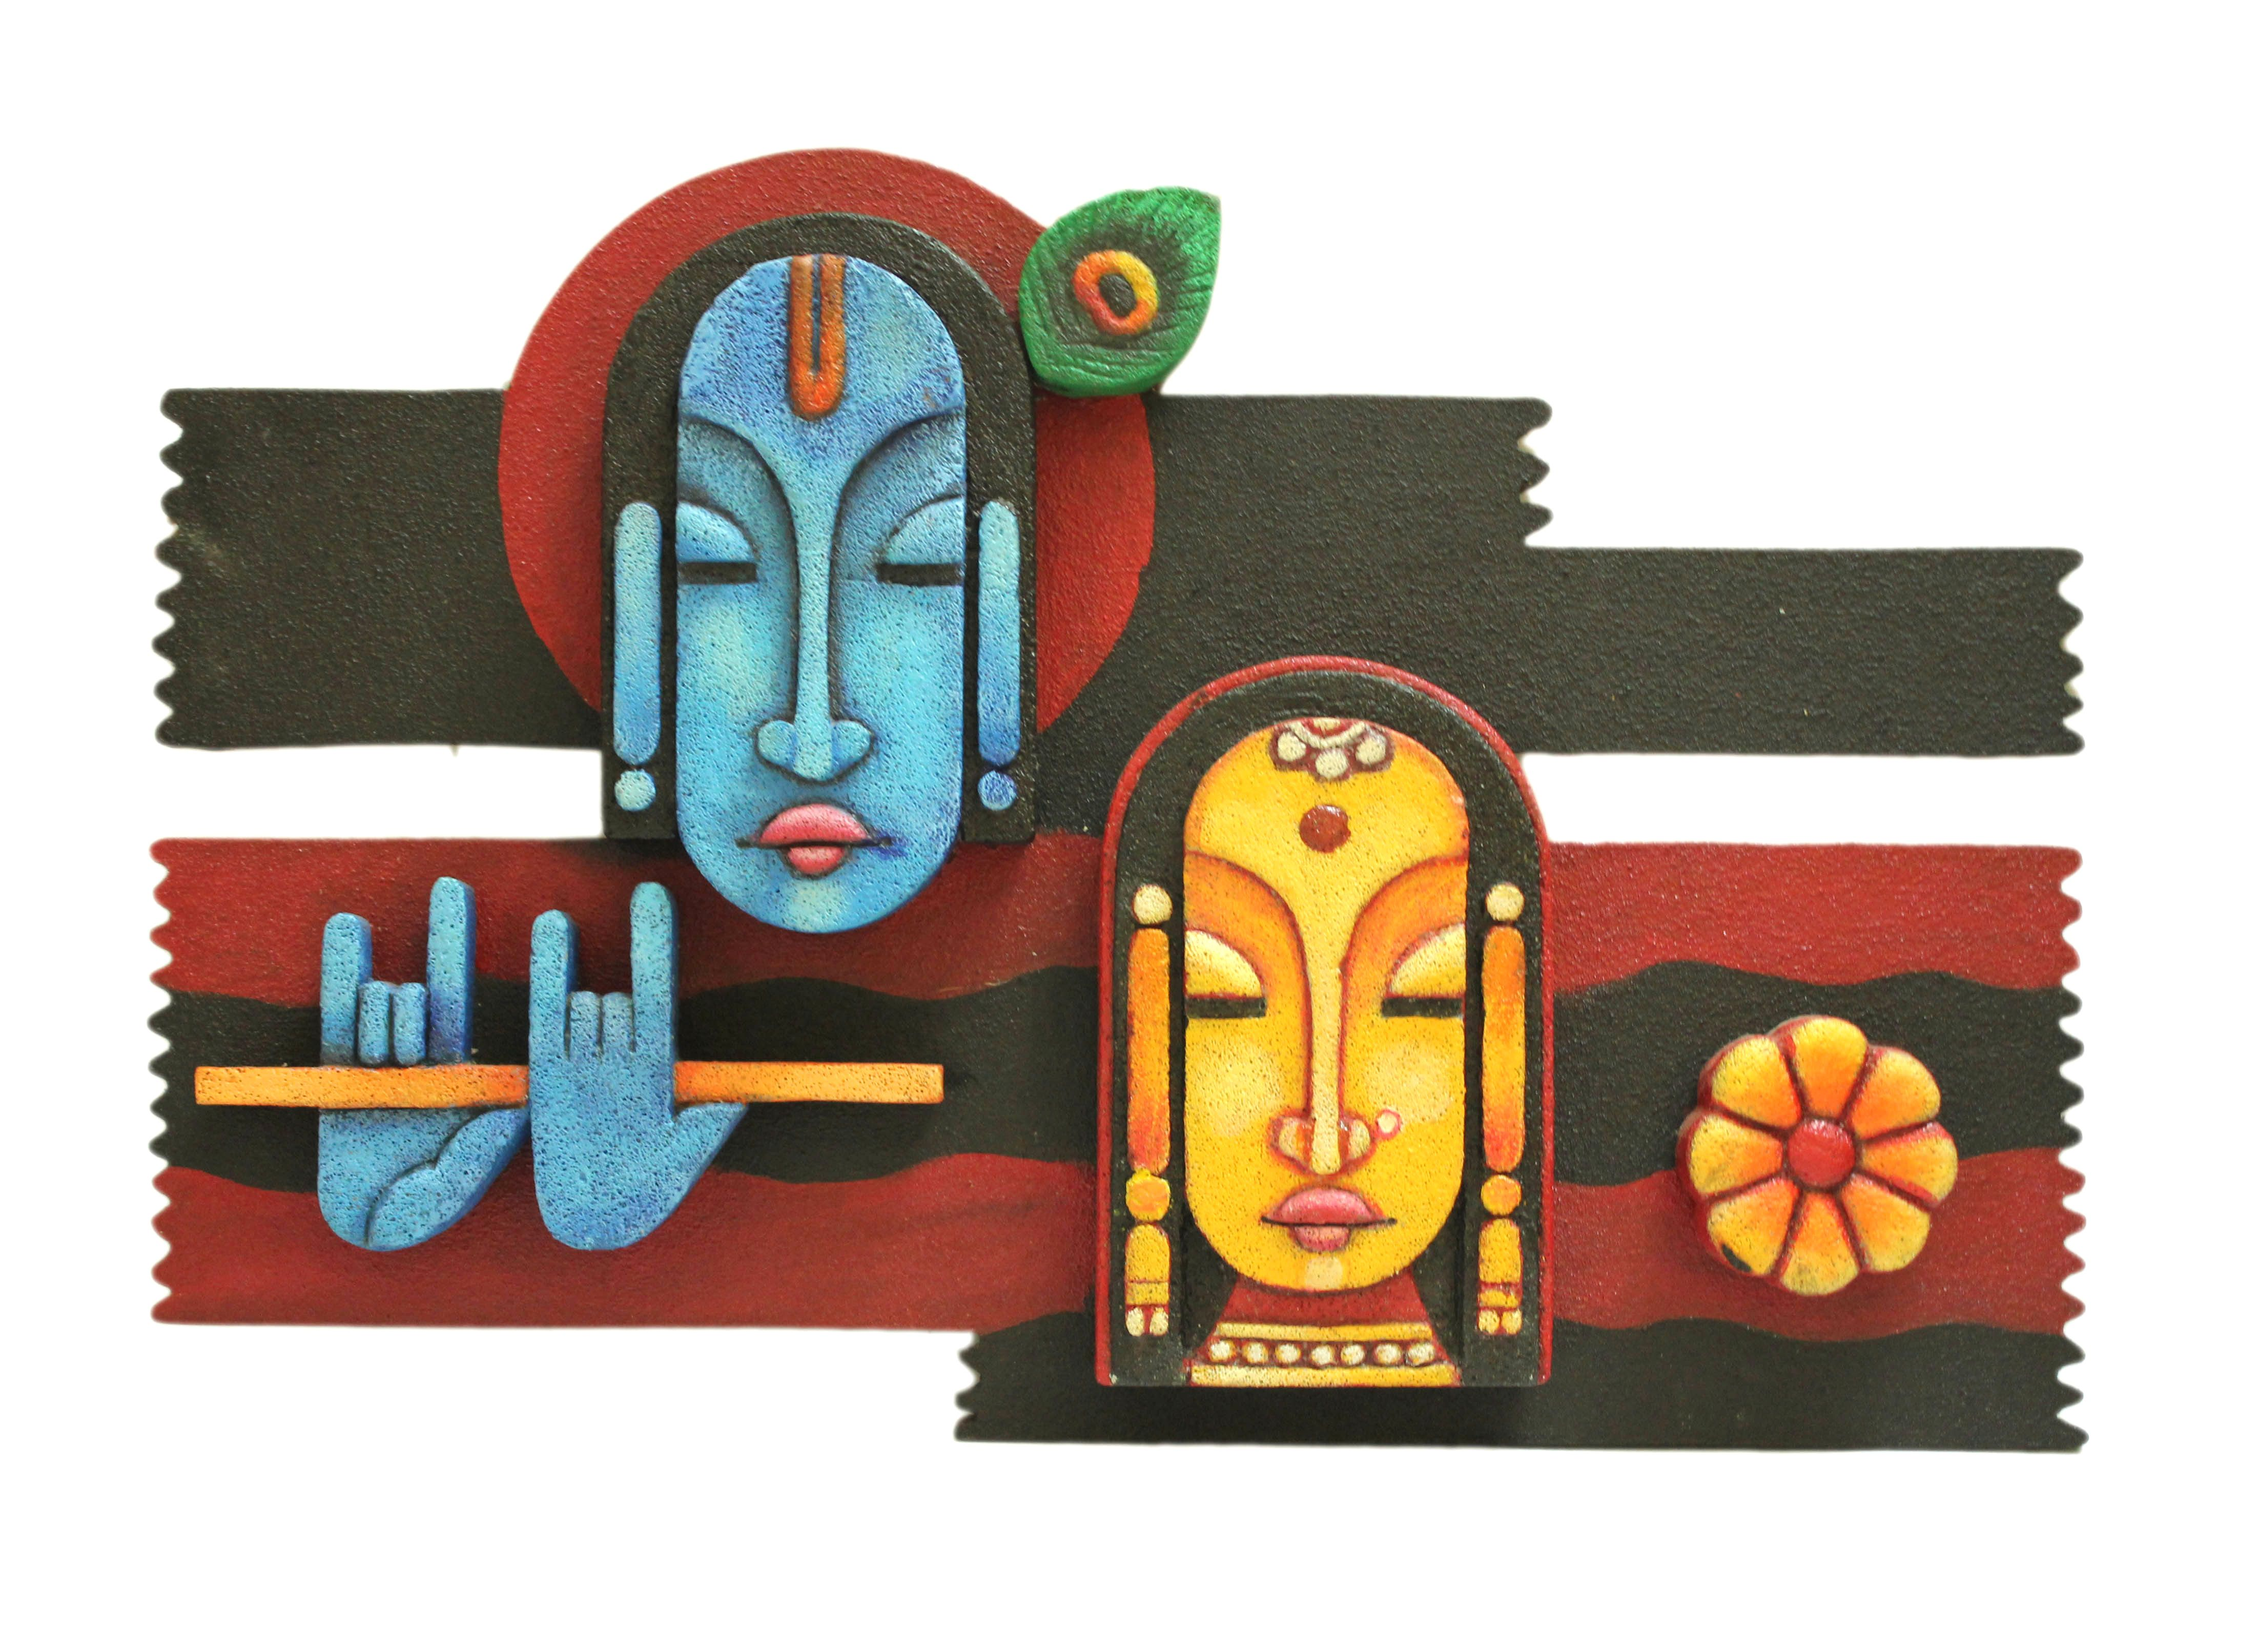 this radha amp krishna wall mural adds that admirable radha krishna and gopini mural deco painting on a wooden